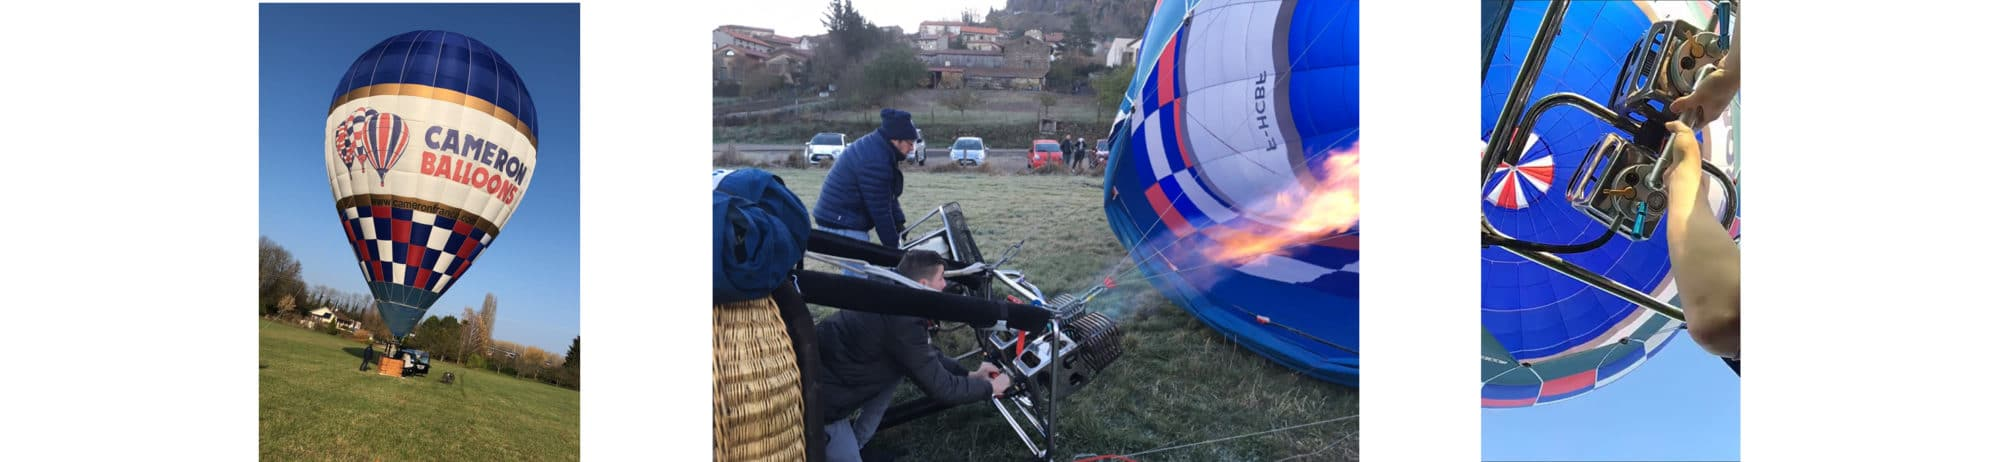 Formation au pilotage de ballon à Air Chaud à Dole